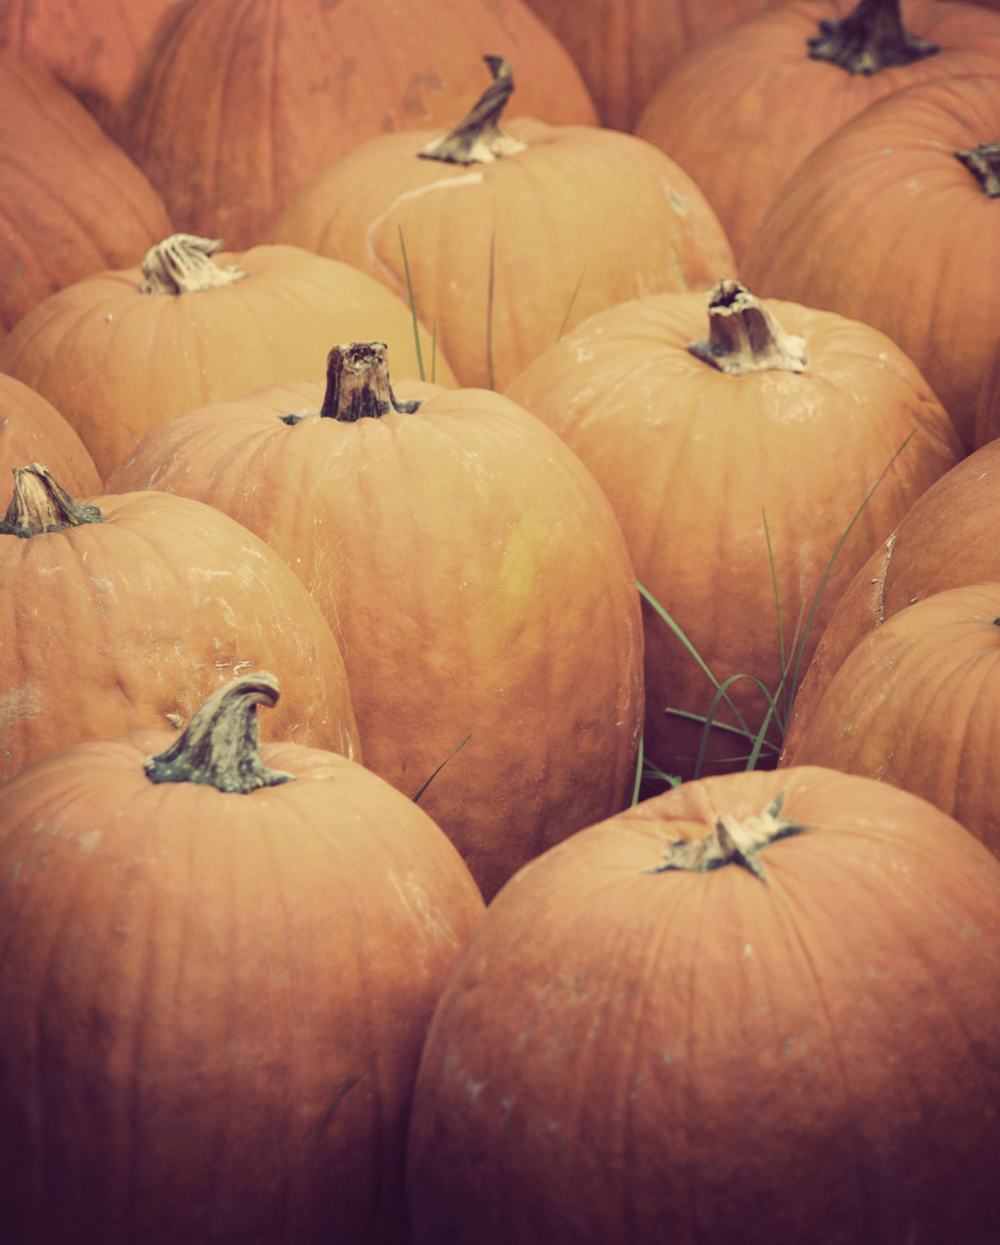 The pumpkin patch at Ganyard Hill Farm in Durham, North Carolina. | © Christy Hydeck